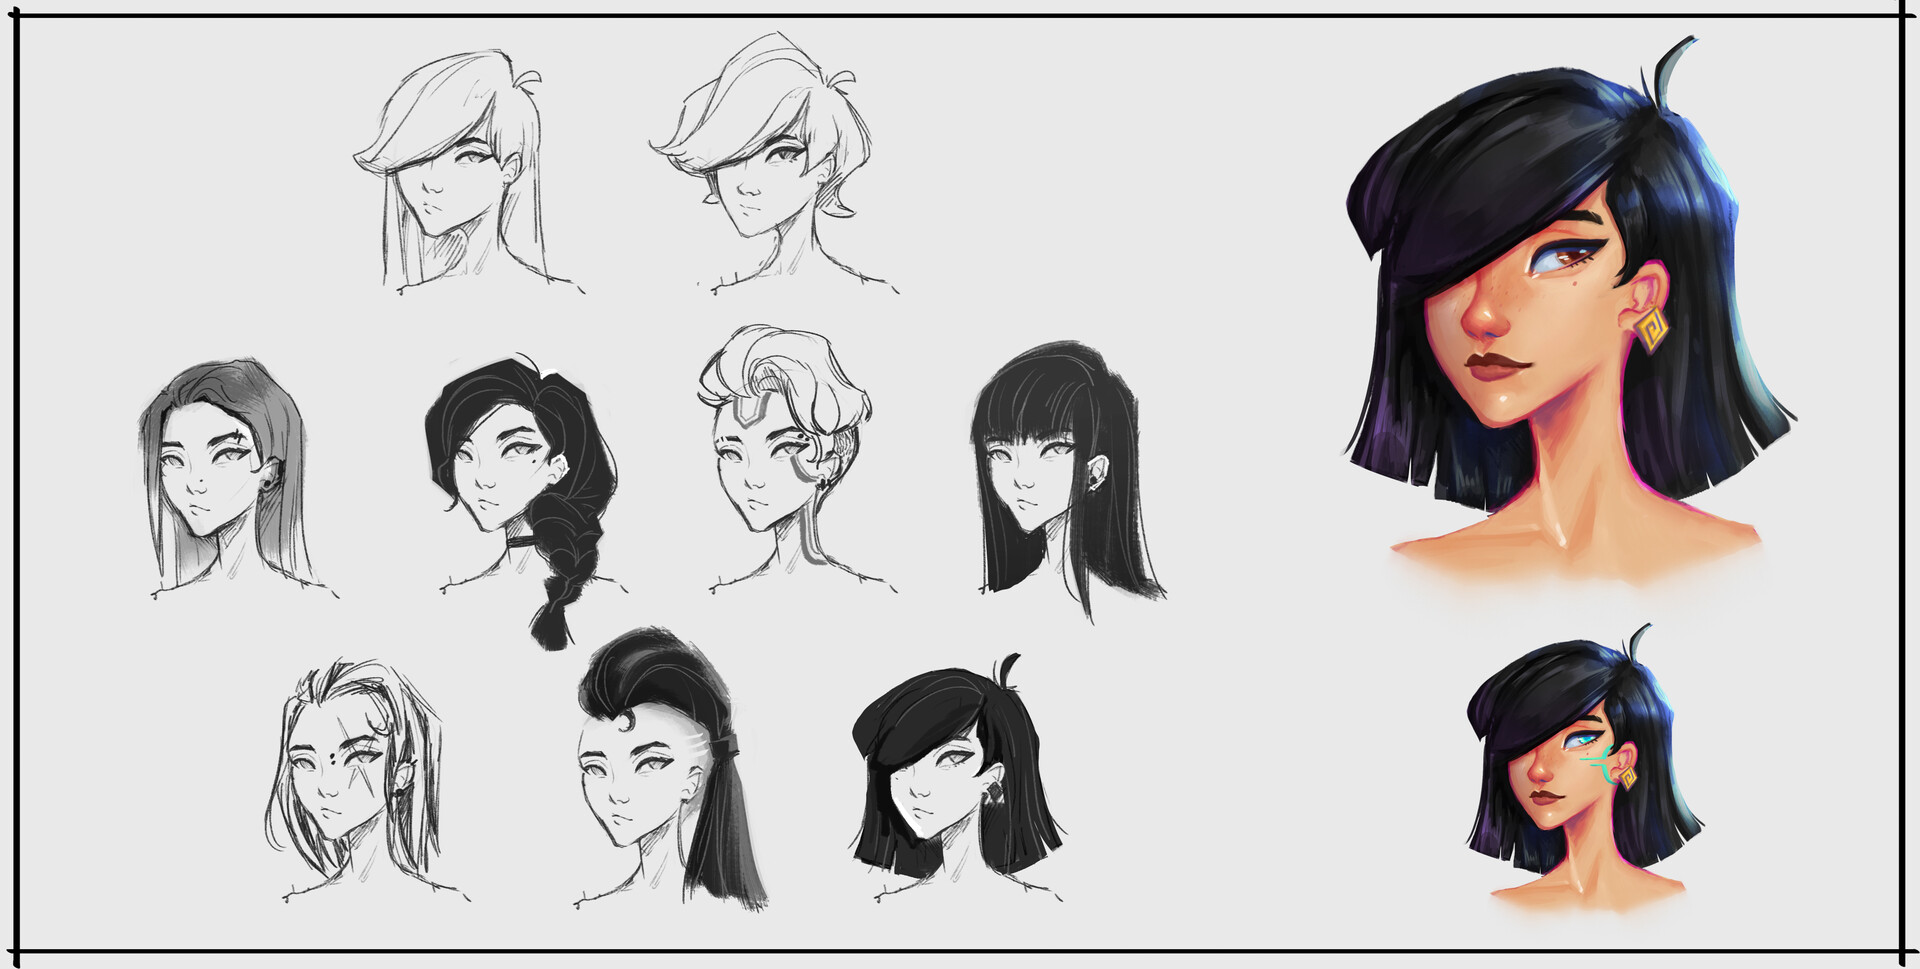 I started her design from a portrait. I knew I wanted to her be an east asian presenting fighter so I explored hair and face variations until I found one I liked! I did away with hair dye since asian characters CAN stand unique without dye!!!